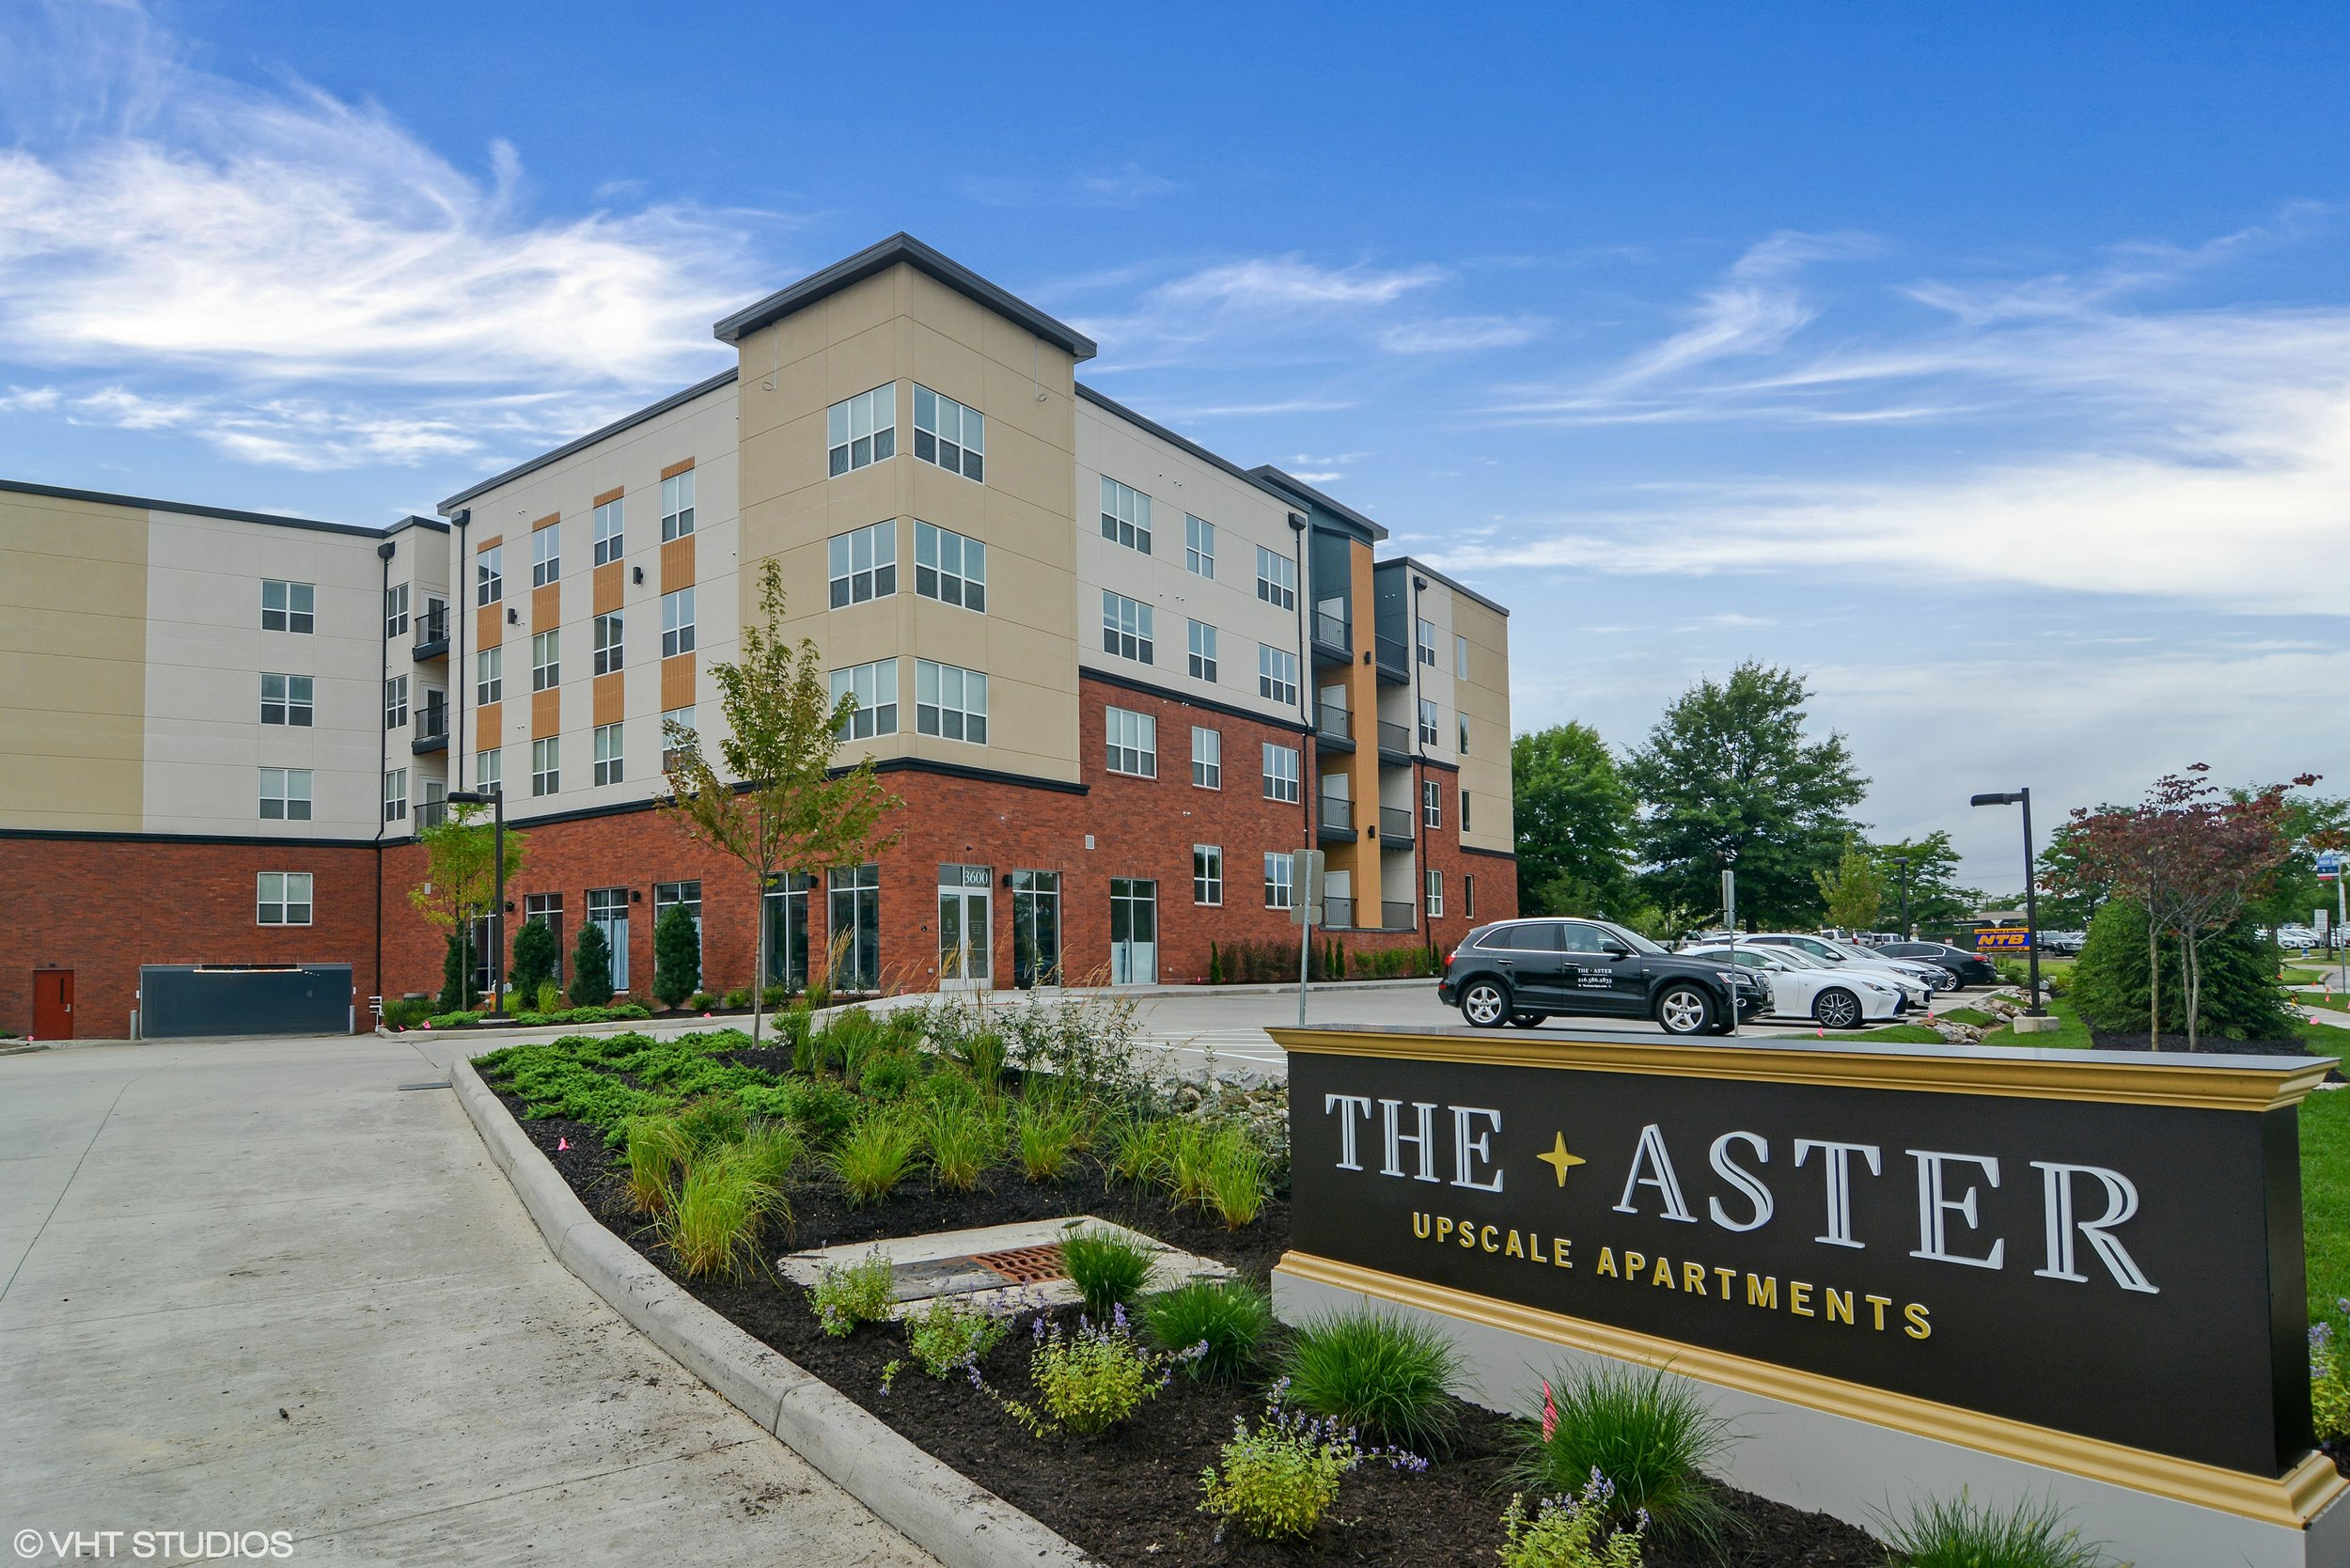 The Aster - Covington Realty Partners developed The Aster, a multi-family residential property in Beachwood, OH.